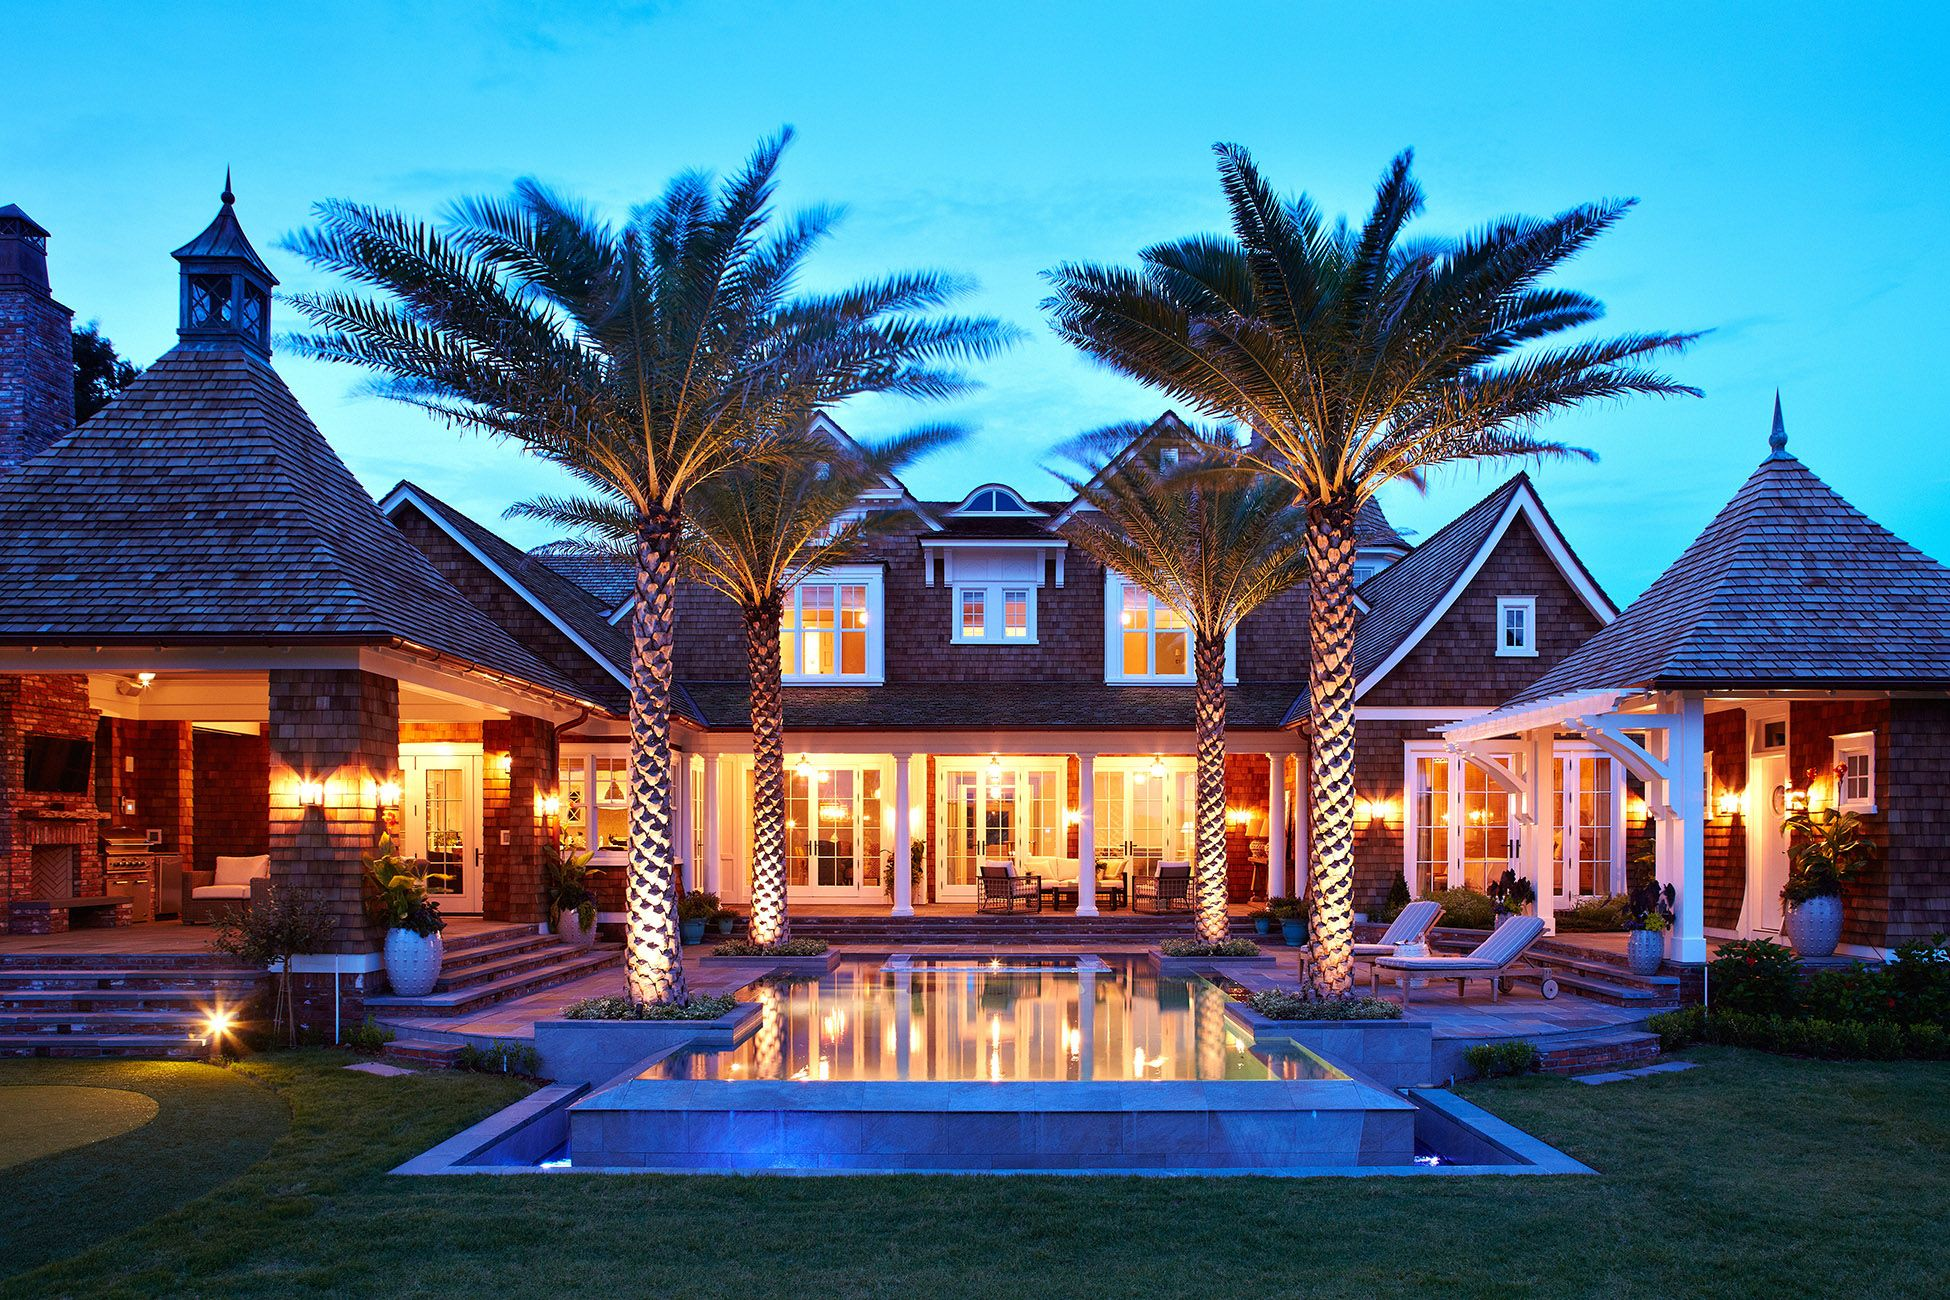 dream backyard with pool and palm trees this outdoor living area